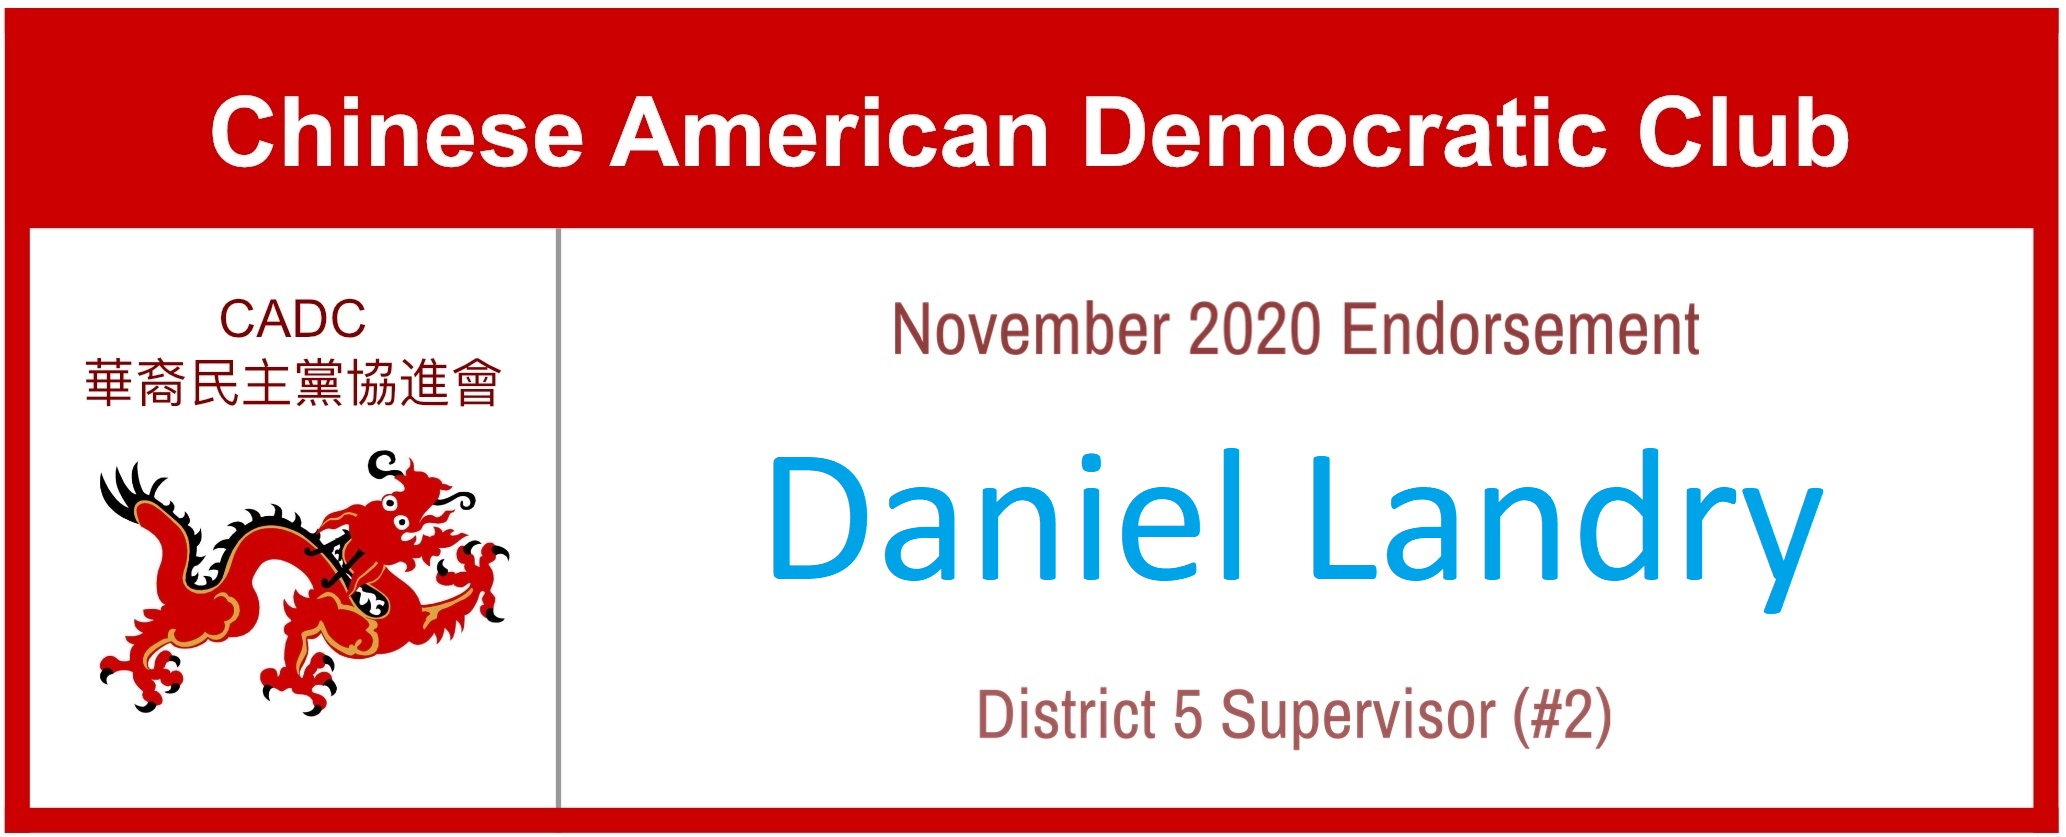 Daniel Landry for District 5 Supervisor - CADC #2 Endorsement November 2020